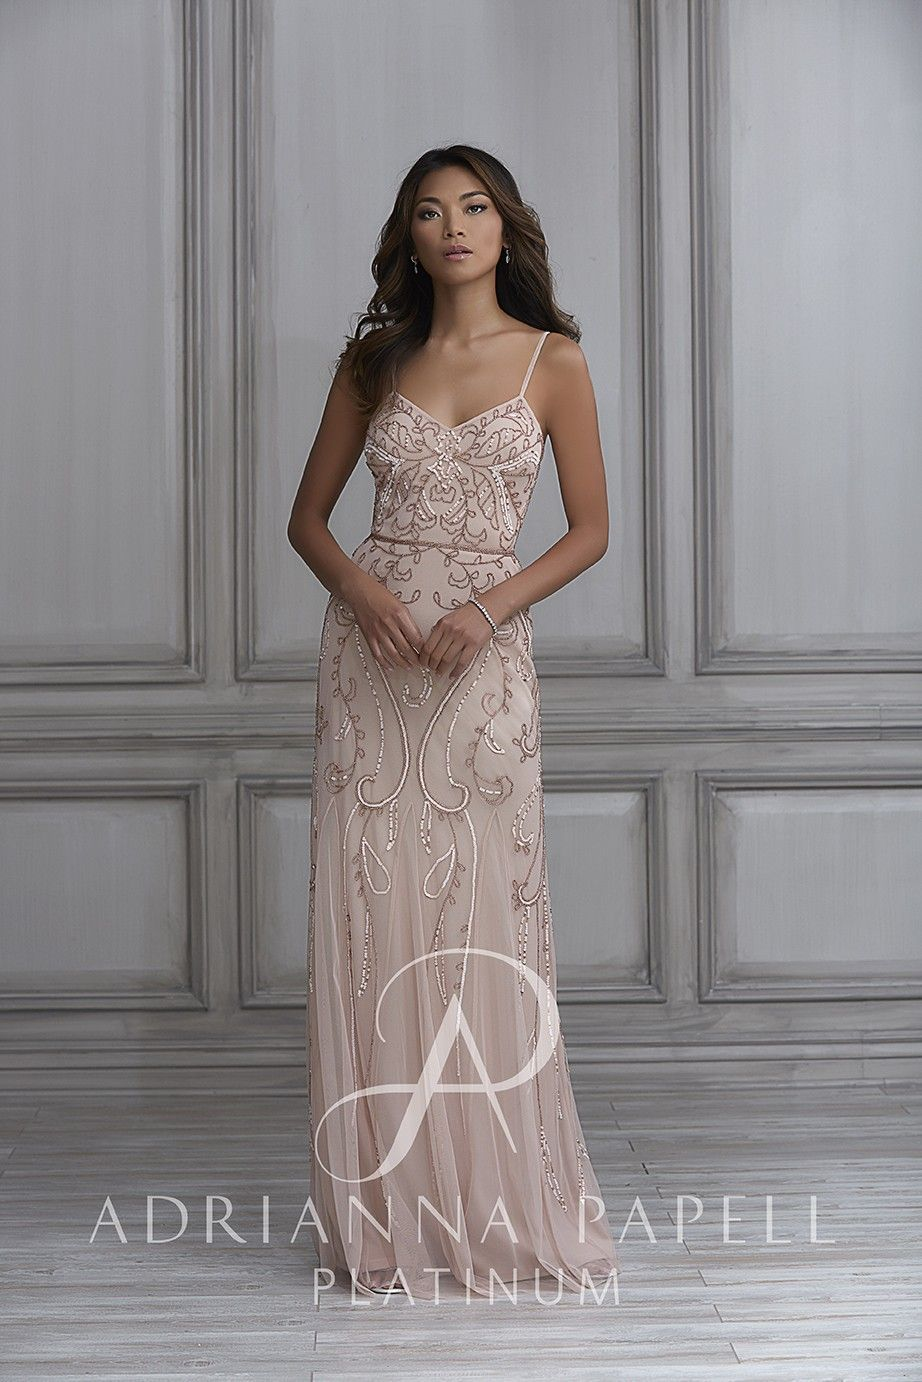 Platinum edition wedding dresses  Fulllength trumpet dress with tulle godets beaded waist and a v